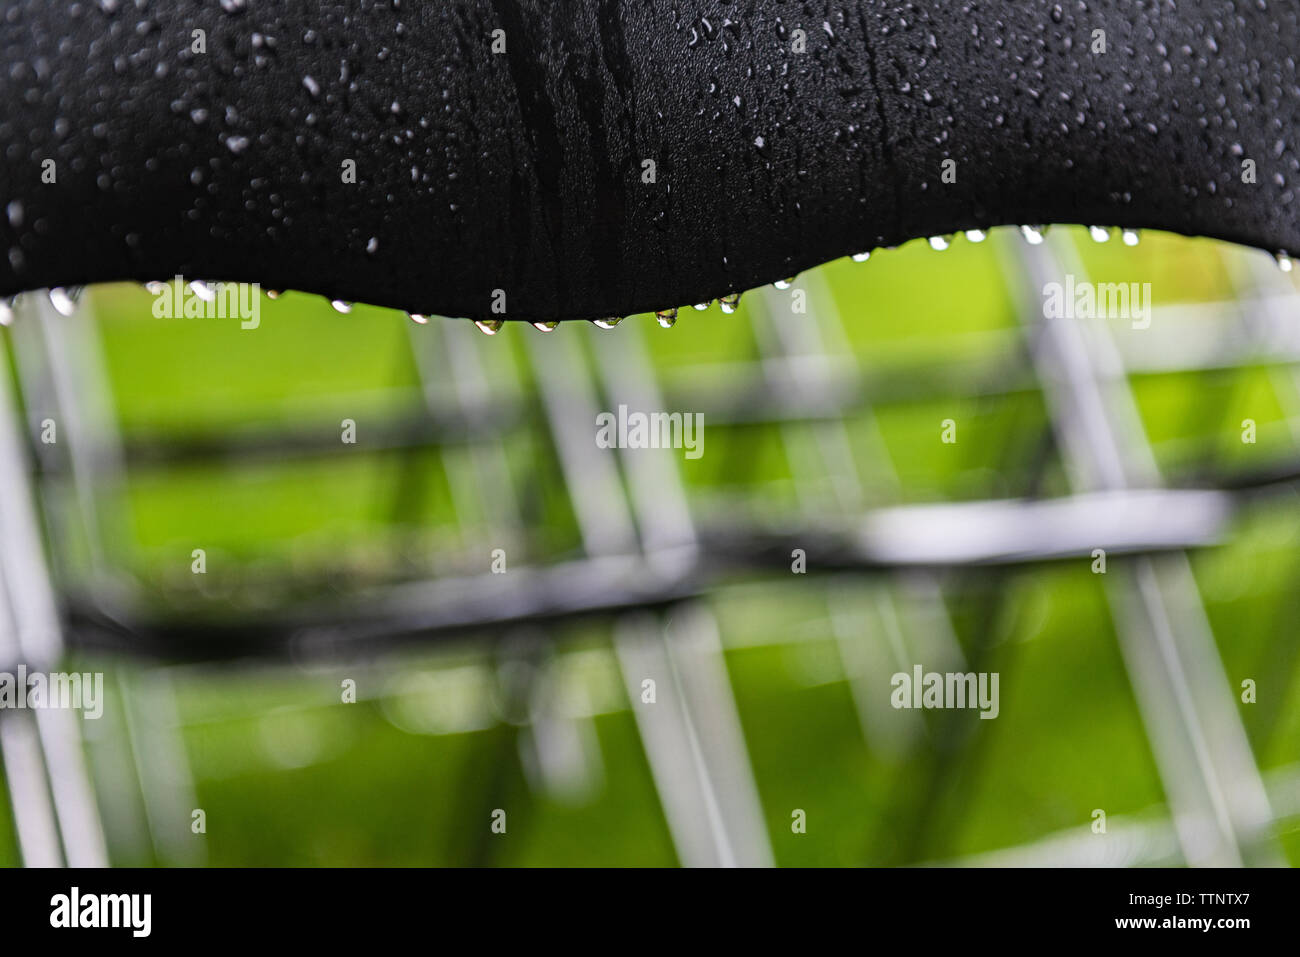 Black chair stand outside in the park in the rain. Empty auditorium, green grass, trees and chairs with water drops. - Stock Image